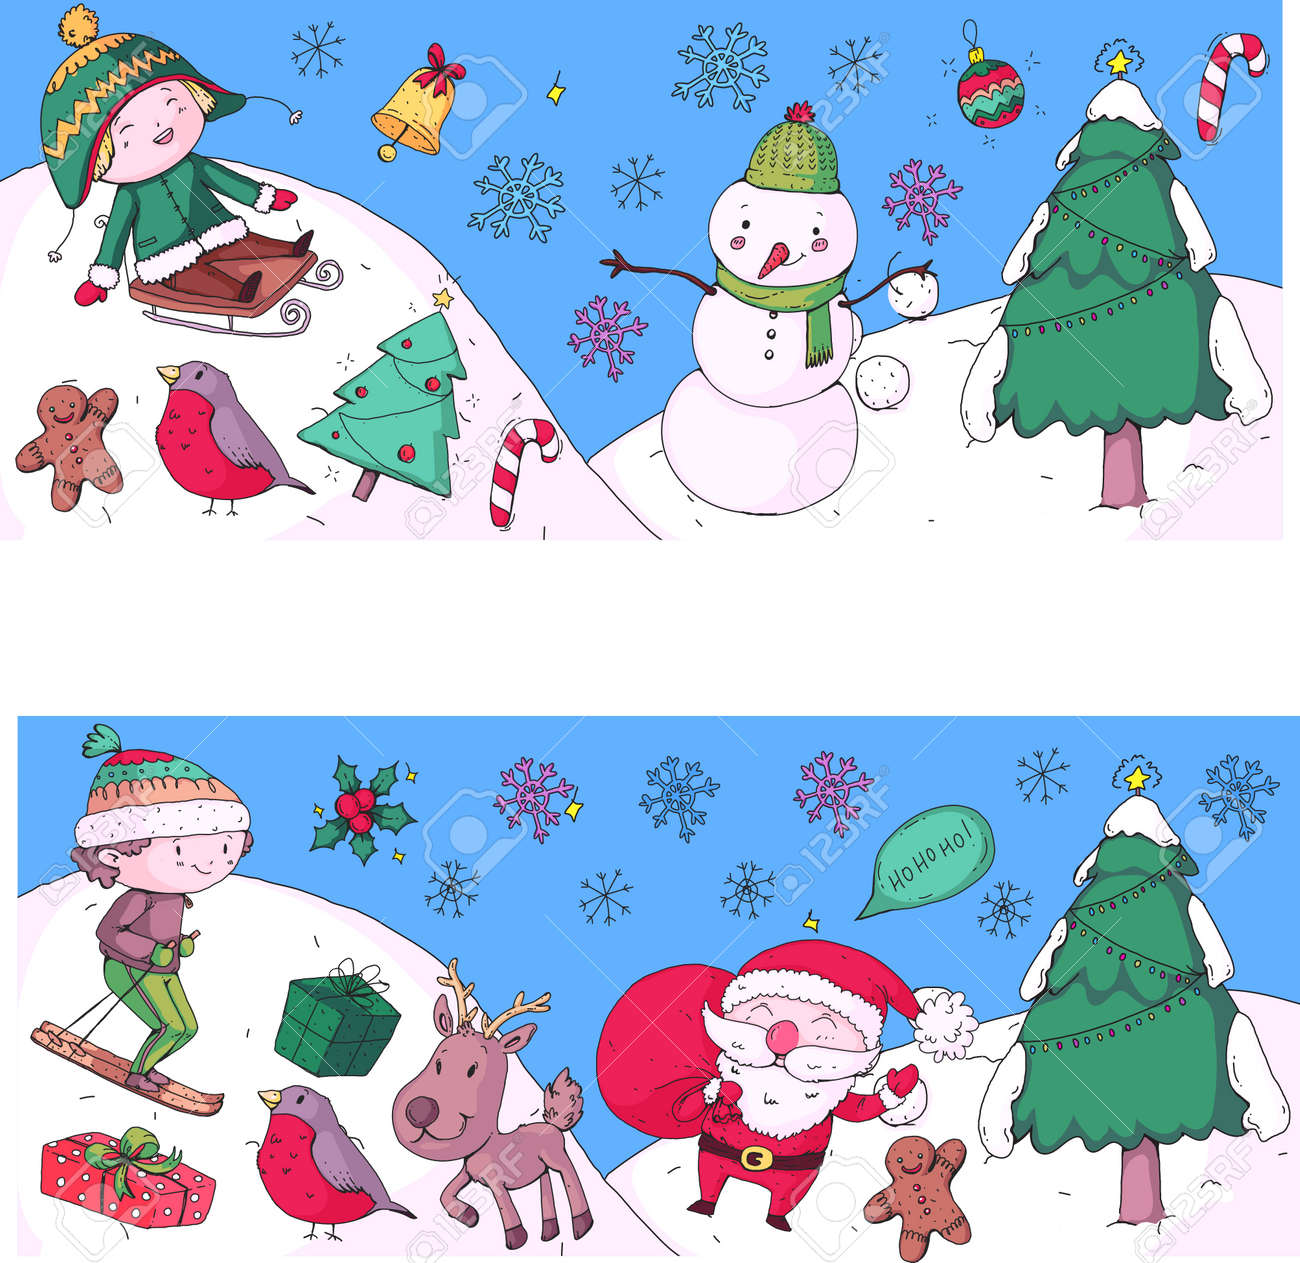 Christmas Celebration Images For Drawing.Merry Christmas Celebration With Children Kids Drawing Illustration